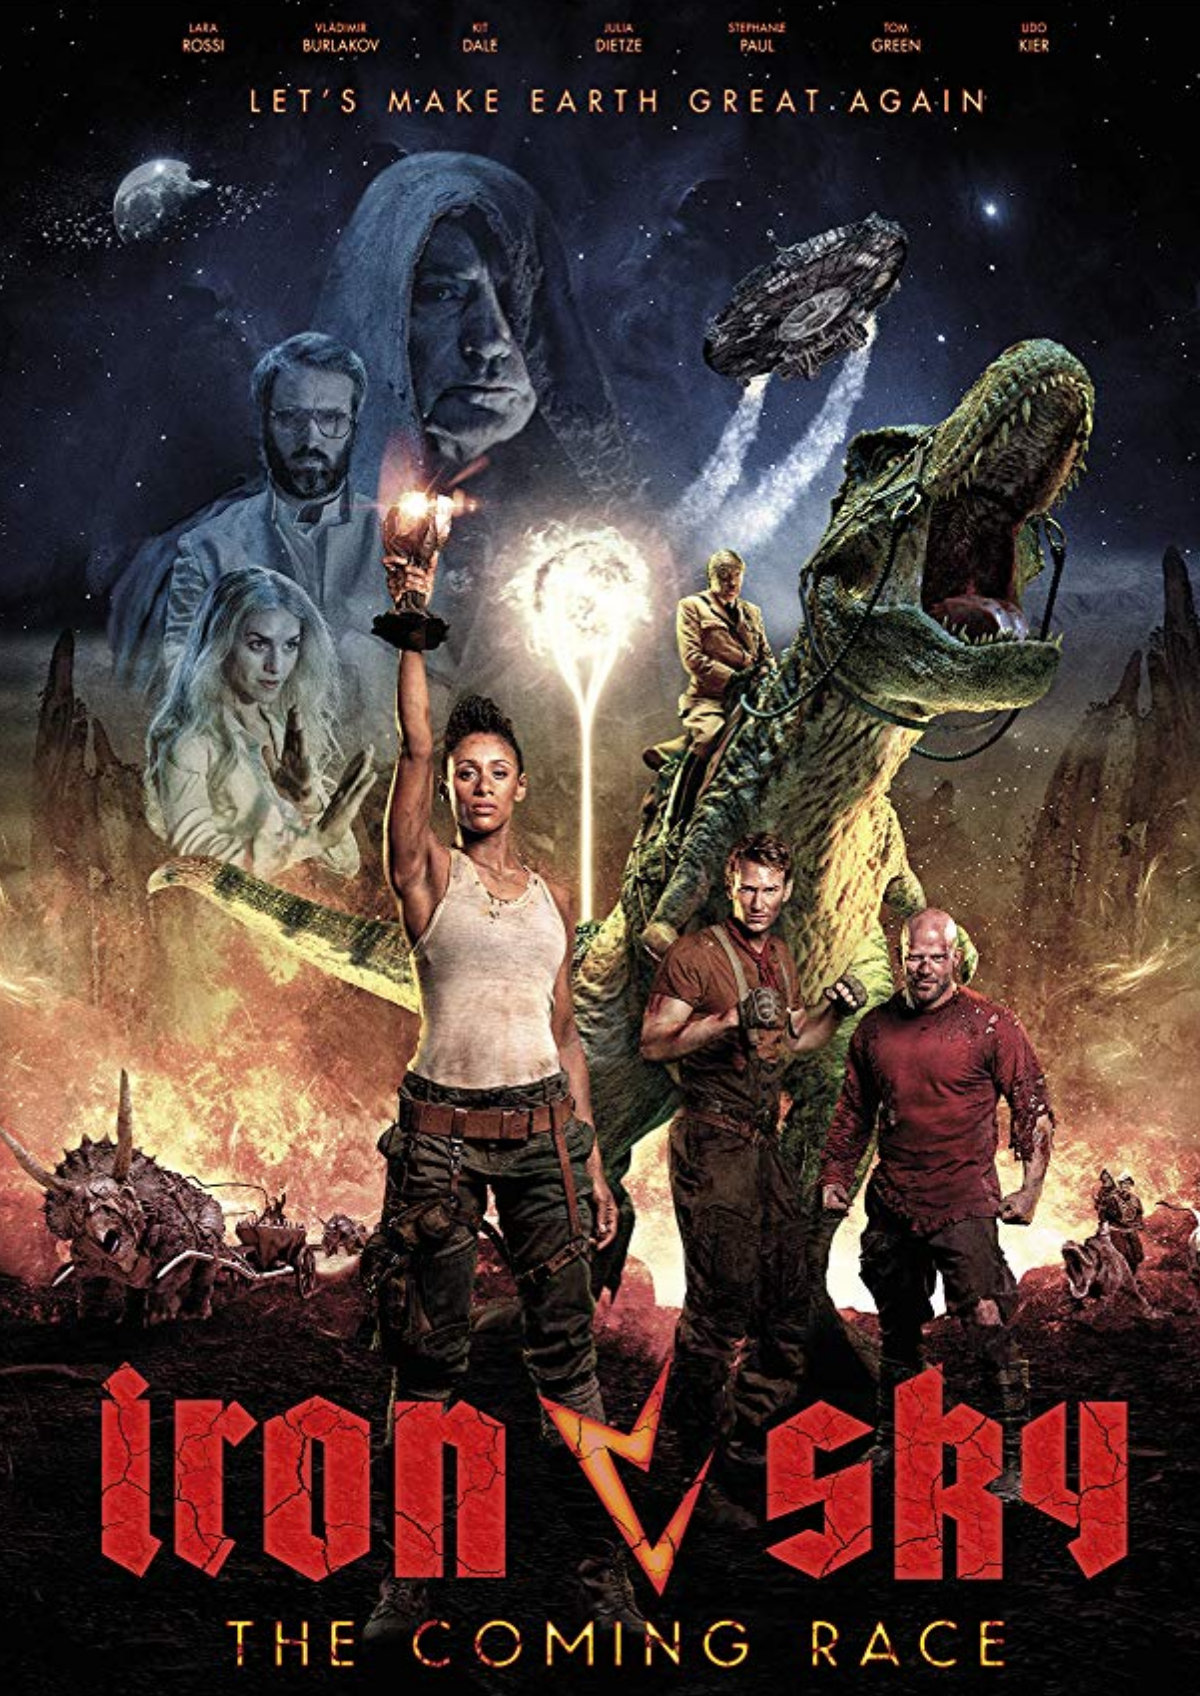 'Iron Sky: The Coming Race' movie poster